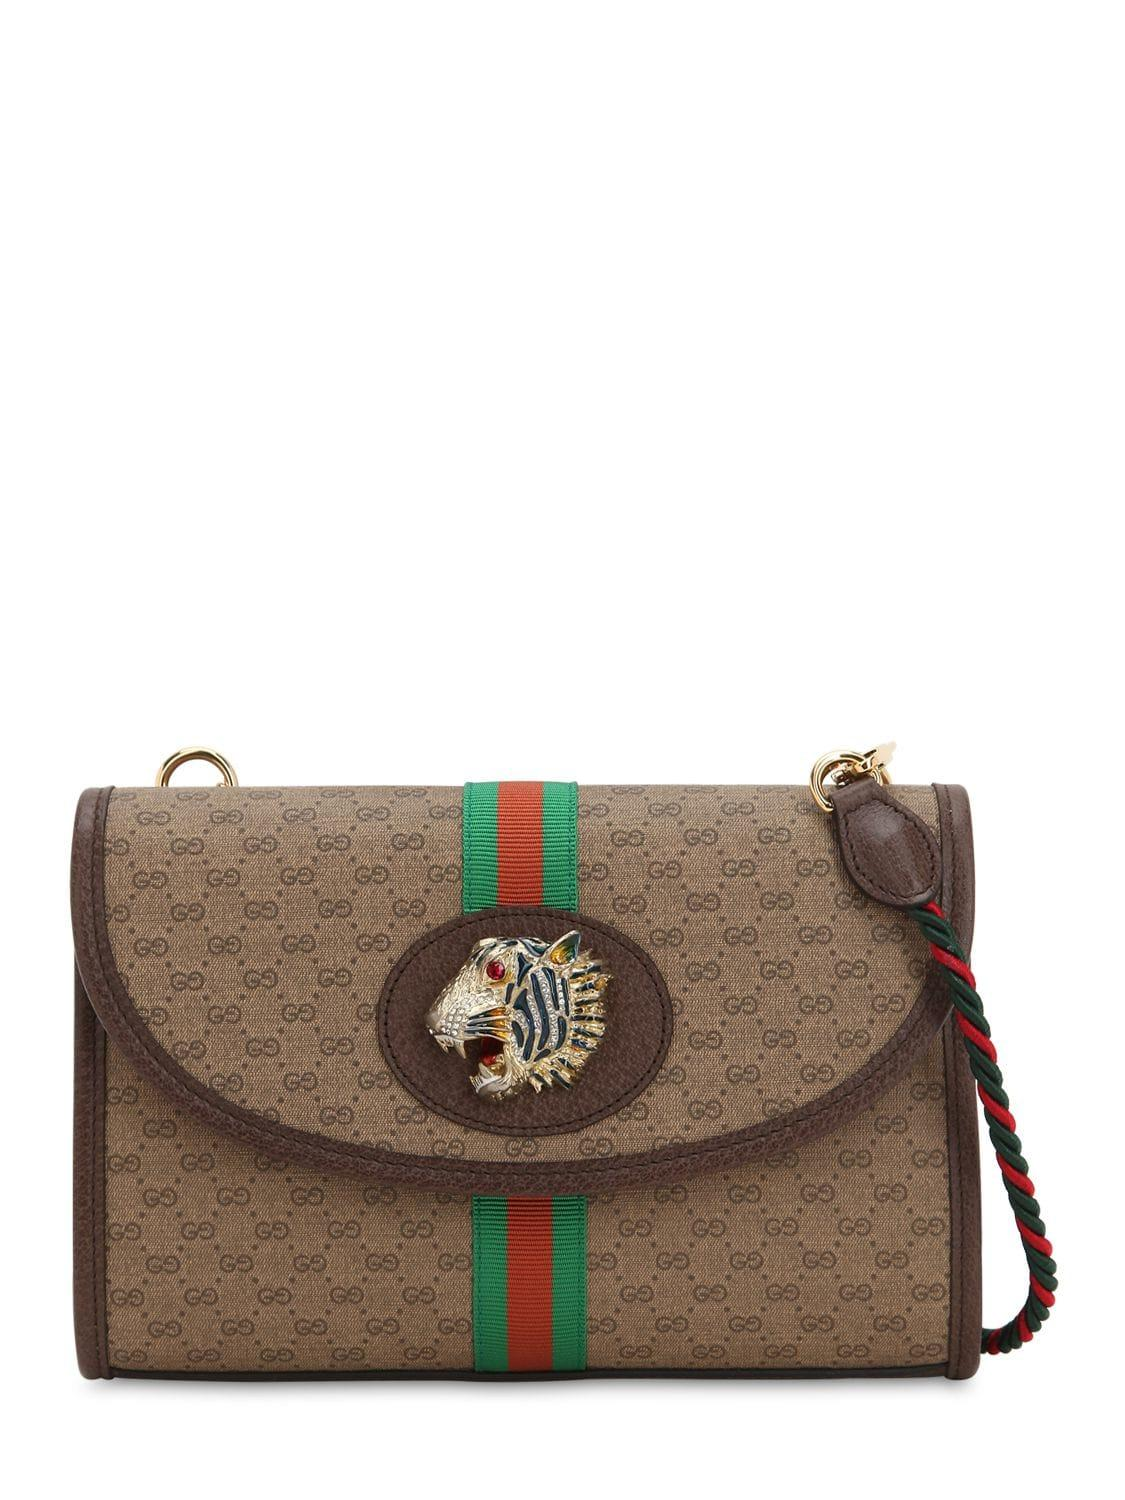 aefd76b757 Gucci Tiger Rajah Gg Supreme Leather Bag in Natural - Lyst